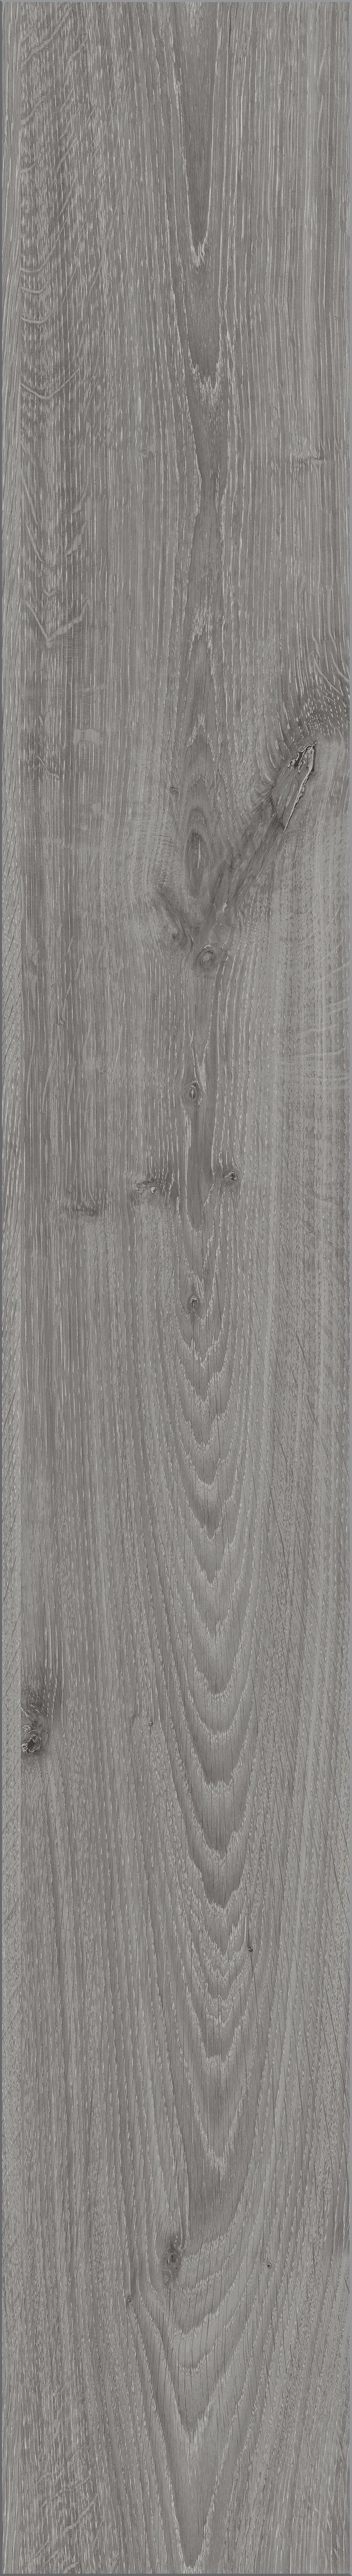 kronotex robusto laminat timeless oak grau d 3571 von kronotex. Black Bedroom Furniture Sets. Home Design Ideas